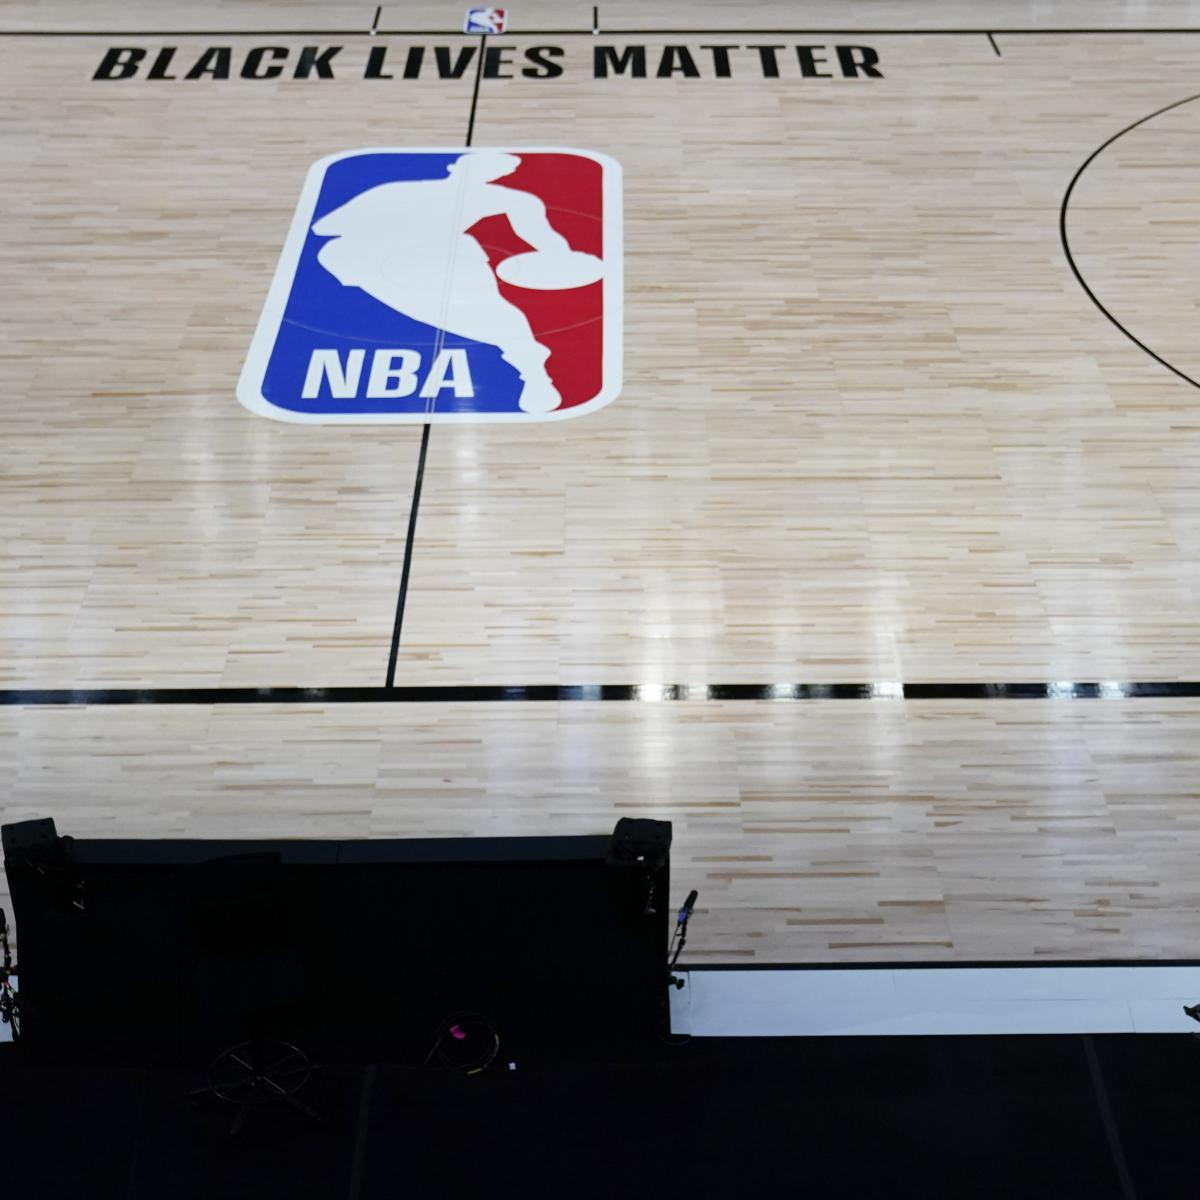 Black Lives Matter Protest Blocks NBA Media Bus After Lakers vs. Rockets